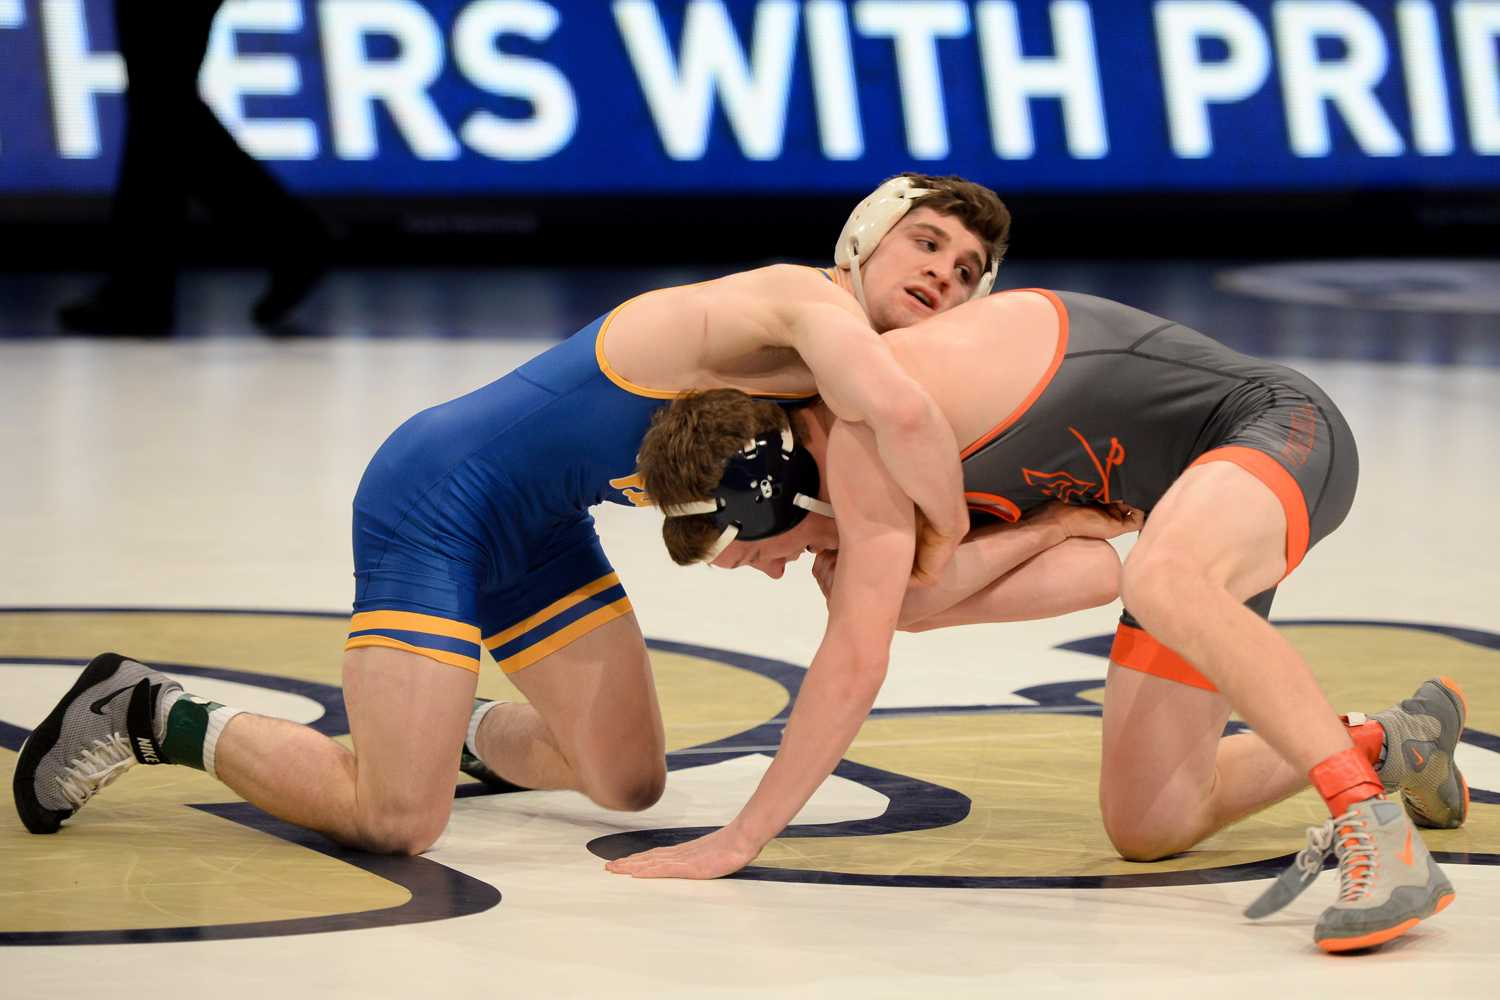 Senior Dom Forys finished his career as a Pitt wrestler at this weekend's NCAA Wrestling Championships. (Photo by Chiara Rigaud | Staff Photographer)